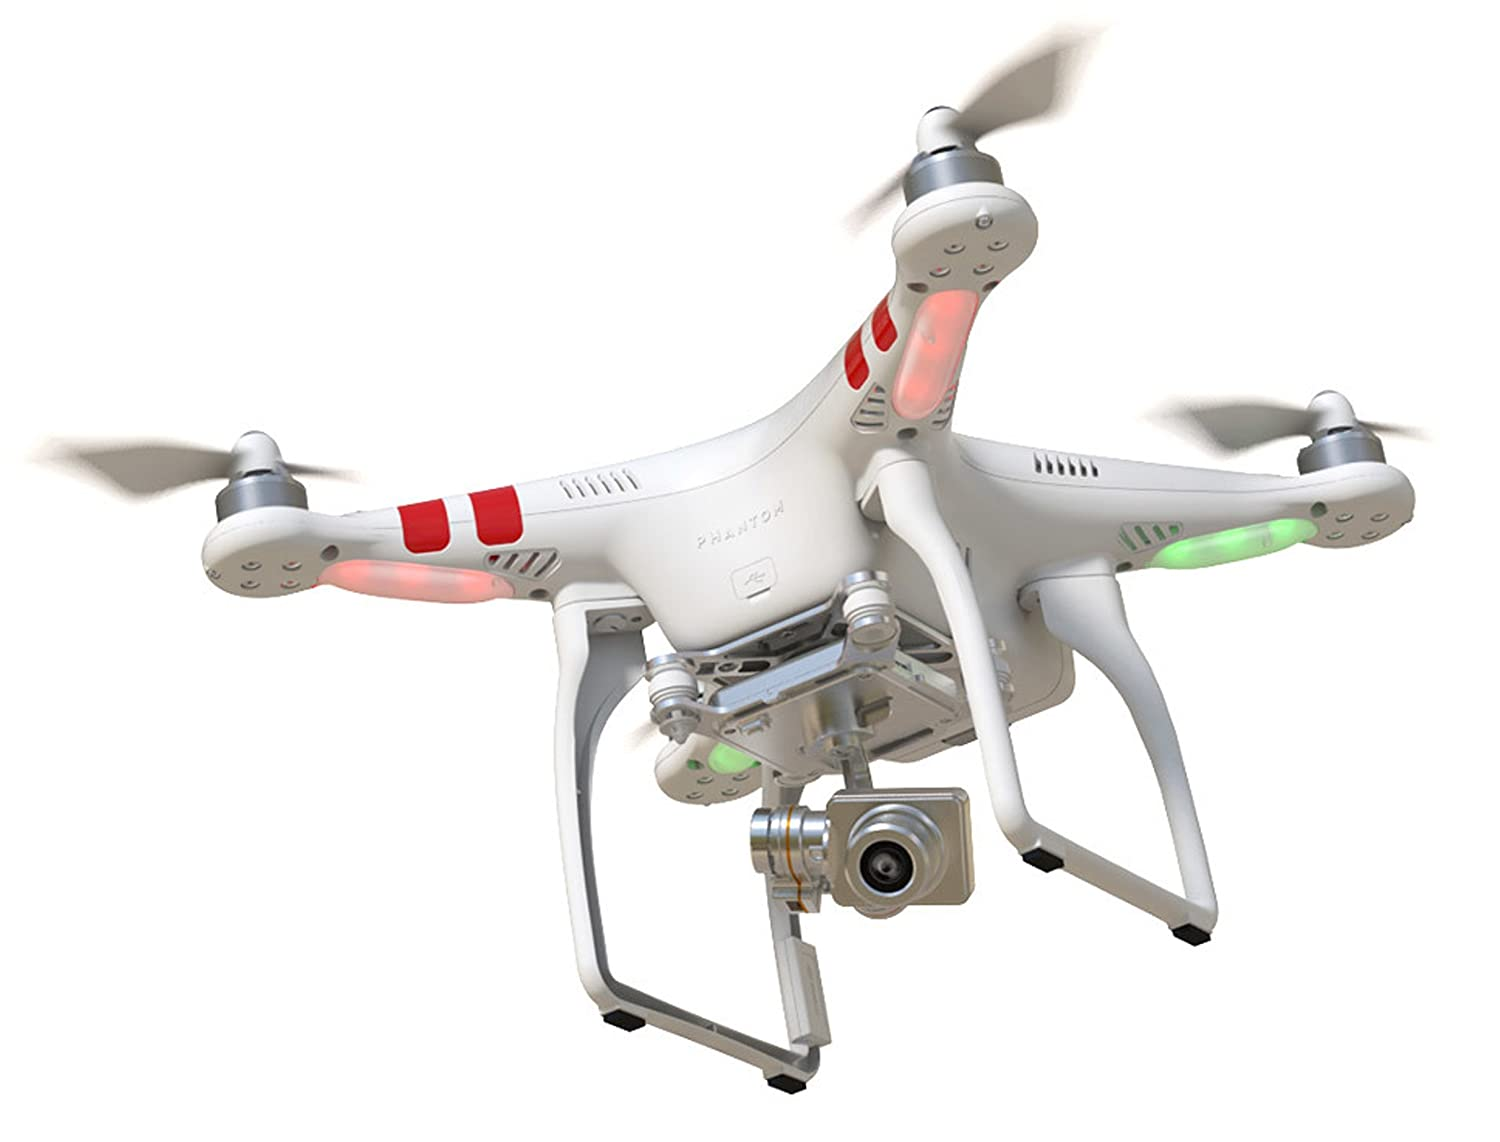 Amazon DJI Phantom 2 Vision V30 Quadcopter With FPV HD Video Camera And 3 Axis Gimbal White Photo